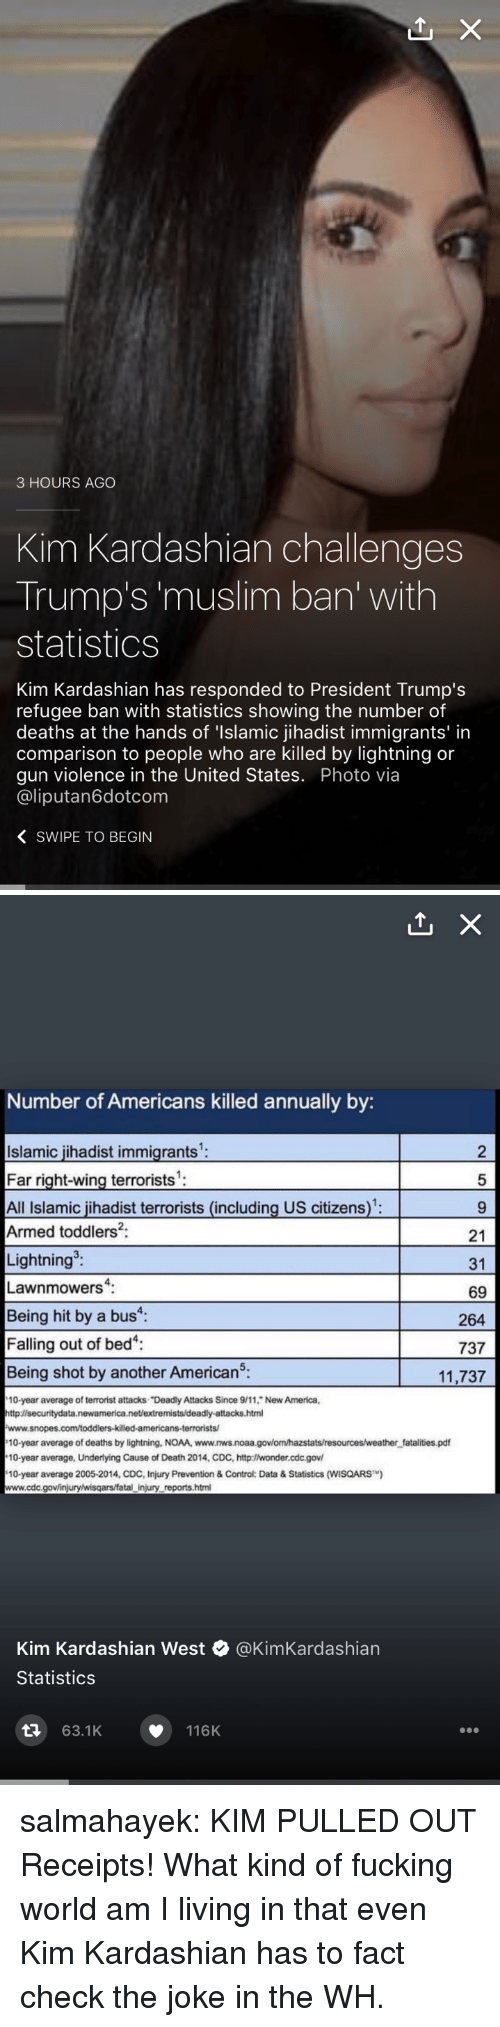 "Fact Check: 3 HOURS AGO  Kim Kardashian challenges  Trump's 'muslim ban' with  statistics  Kim Kardashian has responded to President Trump's  refugee ban with statistics showing the number of  deaths at the hands of 'Islamic jihadist immigrants' in  comparison to people who are killed by lightning or  gun violence in the United States. Photo via  @liputan6dotcom  〈 SWIPE TO BEGIN   Number of Americans killed annually by:  Islamic jihadist immigrants  Far right-wing terrorists'  All Islamic jihadist terrorists (including US citizens):  Armed toddlers2:  Lightning  Lawnmowers:  Being hit by a bus  Falling out of bed  Being shot by another American5.  2  5  21  31  69  264  737  11,737  10-year average of terrorist attacks ""Deadly Attacks Since 9/11, New America,  http:l/securitydata.newamerica.net/extremists/deadly-attacks.html  10-year average of deaths by lightning, NOAA, www.nws.noaa.govlom/hazstats/resources/weather fatalities.pdf  10-year average, Underlying Cause of Death 2014, CDC, http:lwonder.cdc.gov  10-year average 2005-2014, CDC, Injury Prevention & Control: Data&Statistics (WISQARS)  www.cdc.gov/injury/wisqars/fatal injury reports.html  Kim Kardashian West @KimKardashian  Statistics  63.1K  116K salmahayek:  KIM PULLED OUT Receipts!  What kind of fucking world am I living in that even Kim Kardashian has to fact check the joke in the WH."